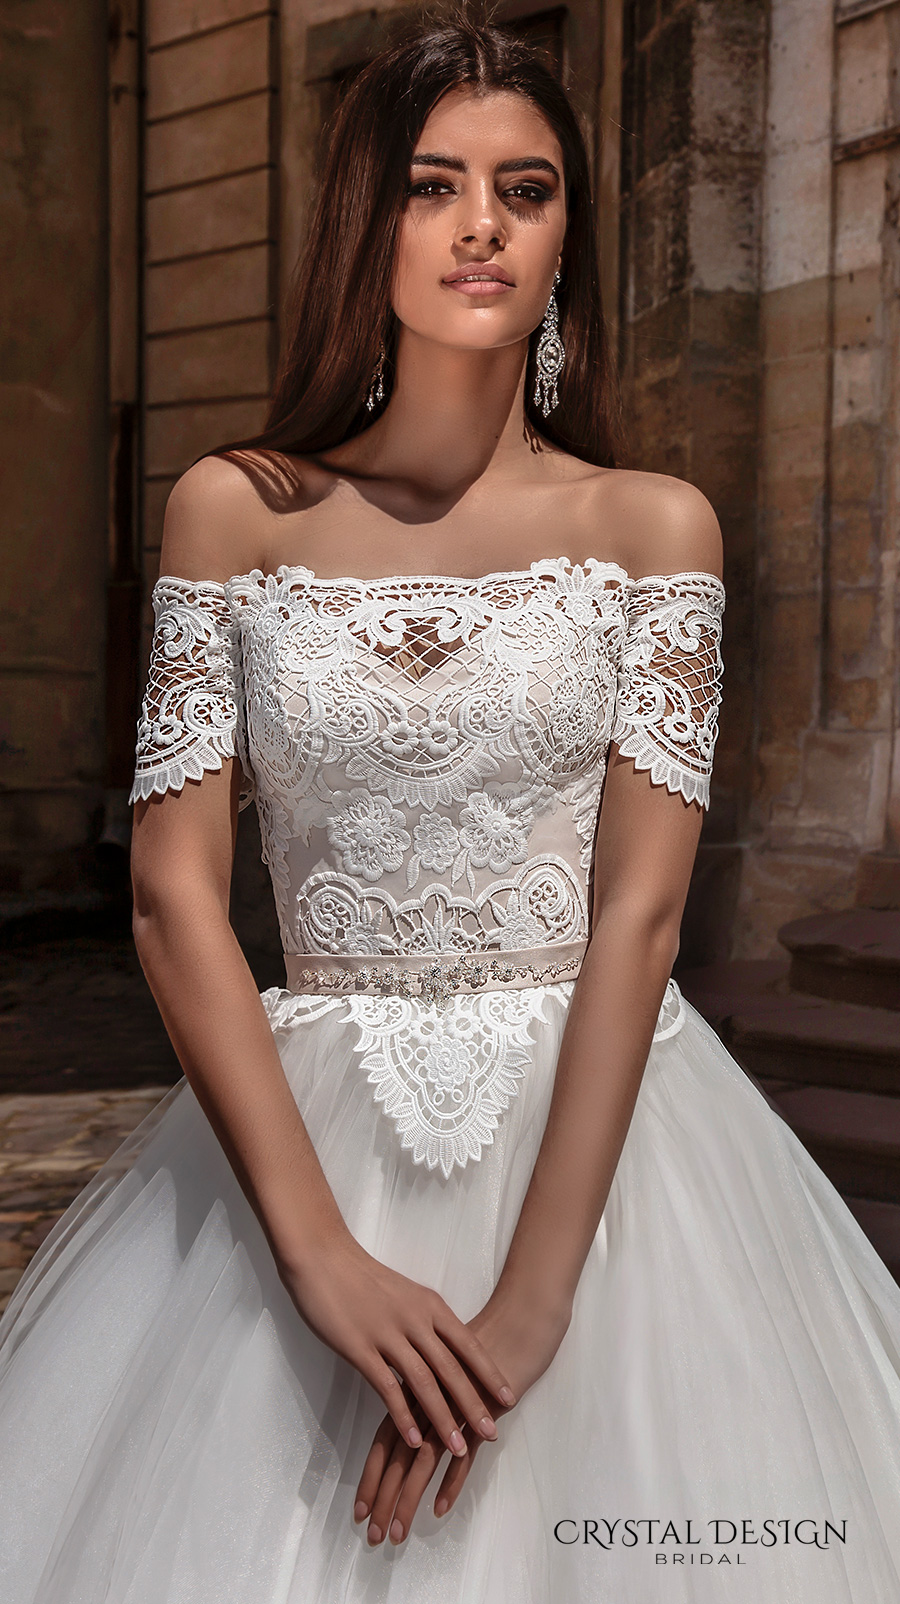 Crystal design 2016 wedding dresses wedding inspirasi for Lace off the shoulder wedding dresses